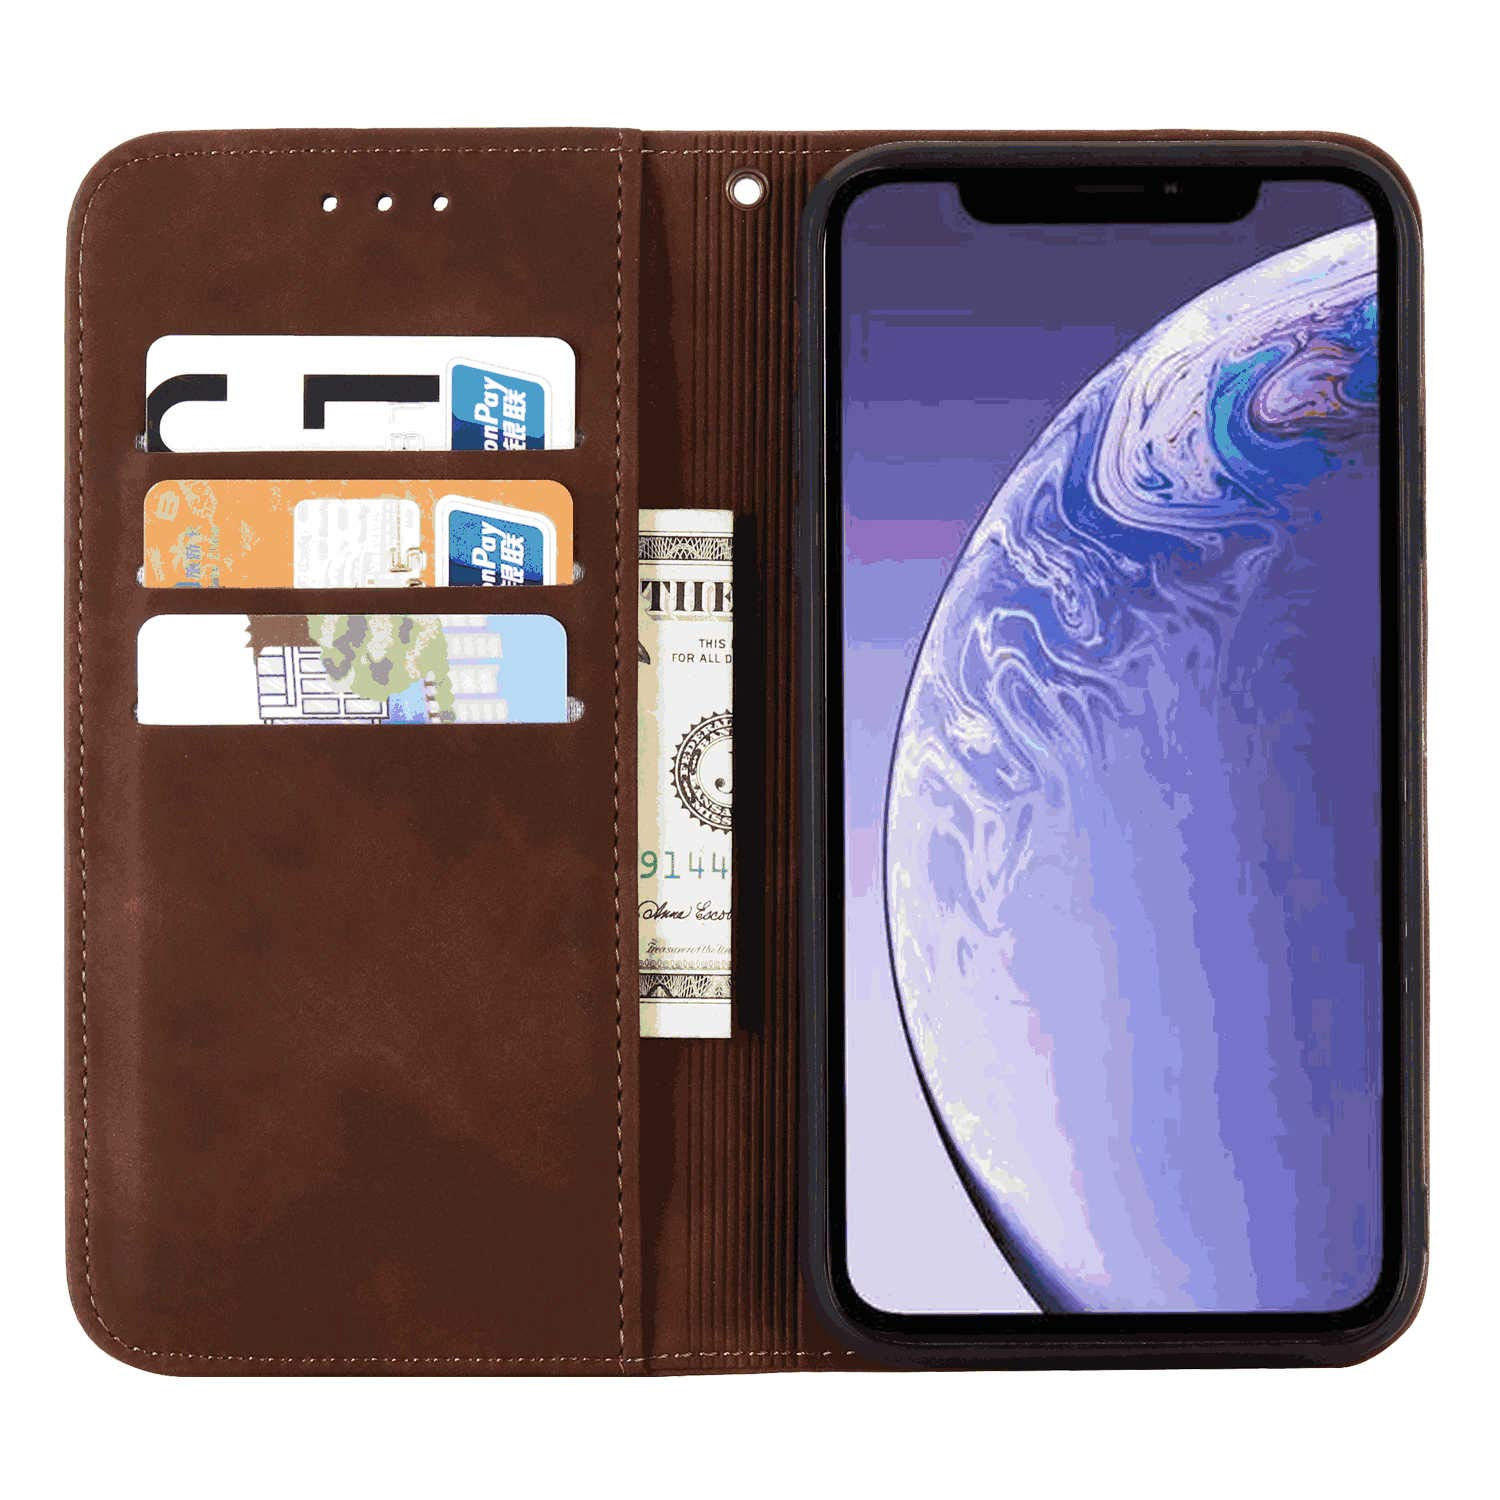 Cover for iPhone 11 Pro Max Leather Card Holders Premium Business Kickstand Cell Phone Cover with Free Waterproof-Bag Elegant iPhone 11 Pro Max Flip Case